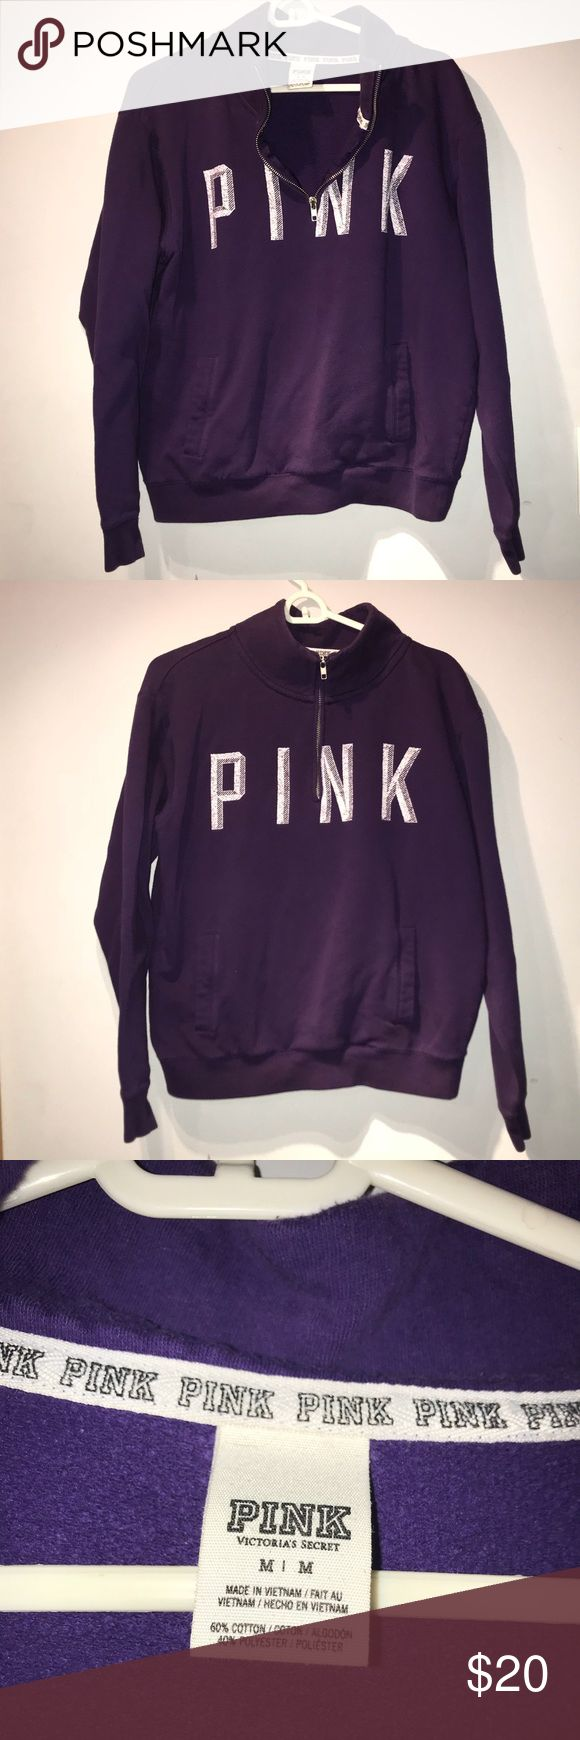 💖 Victoria's Secret PINK Pull Over Gently used condition size medium- Victoria's Secret PINK pull over sweatshirt 💜 perfect with a pair of sneaks and some crop jeans- price negotiable PINK Tops Sweatshirts & Hoodies